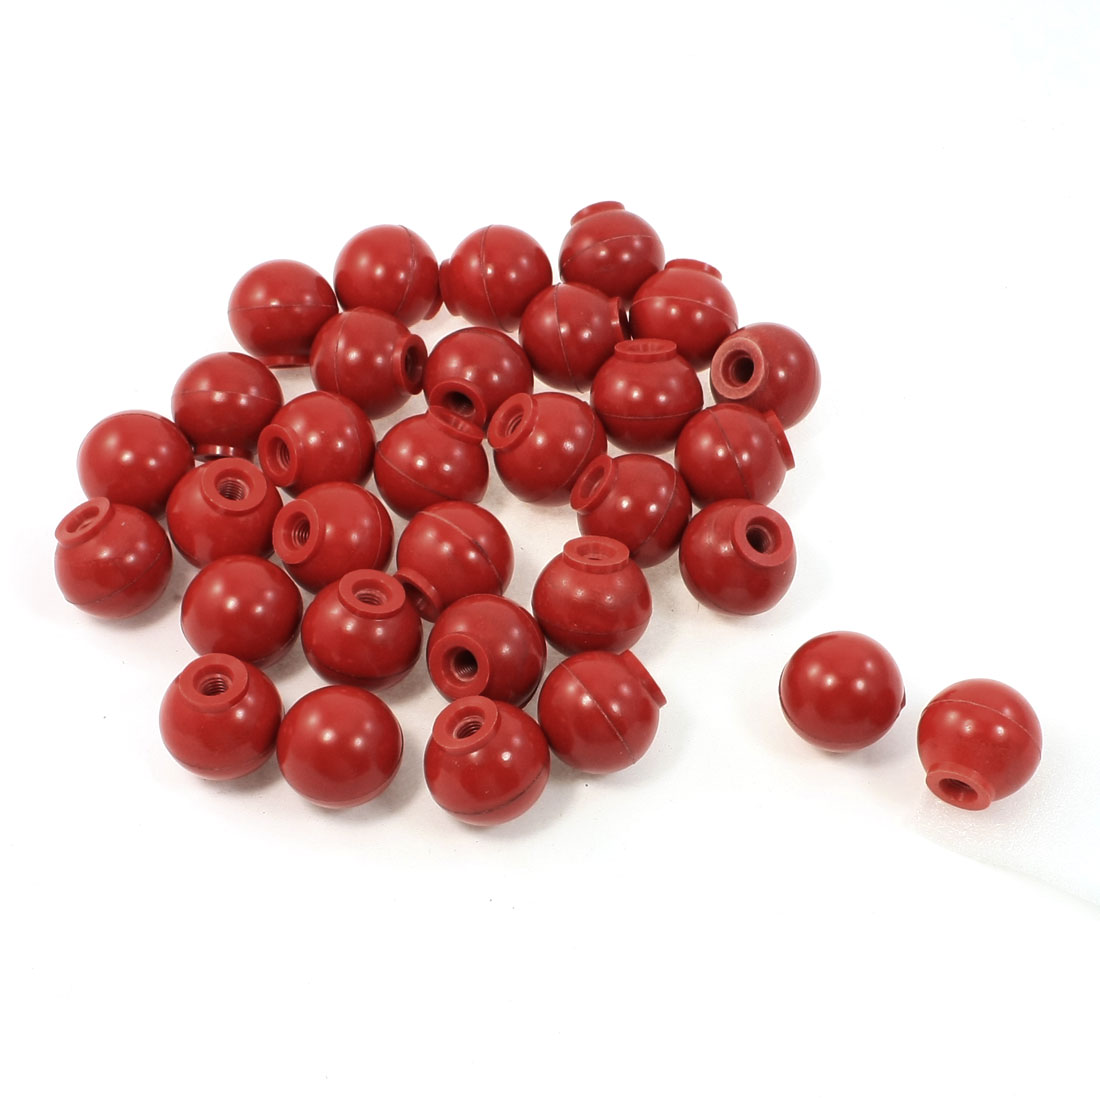 32 Pcs Ball Shape Machine Control Handle Threaded Knob Red 32mm Dia 8mm Bore